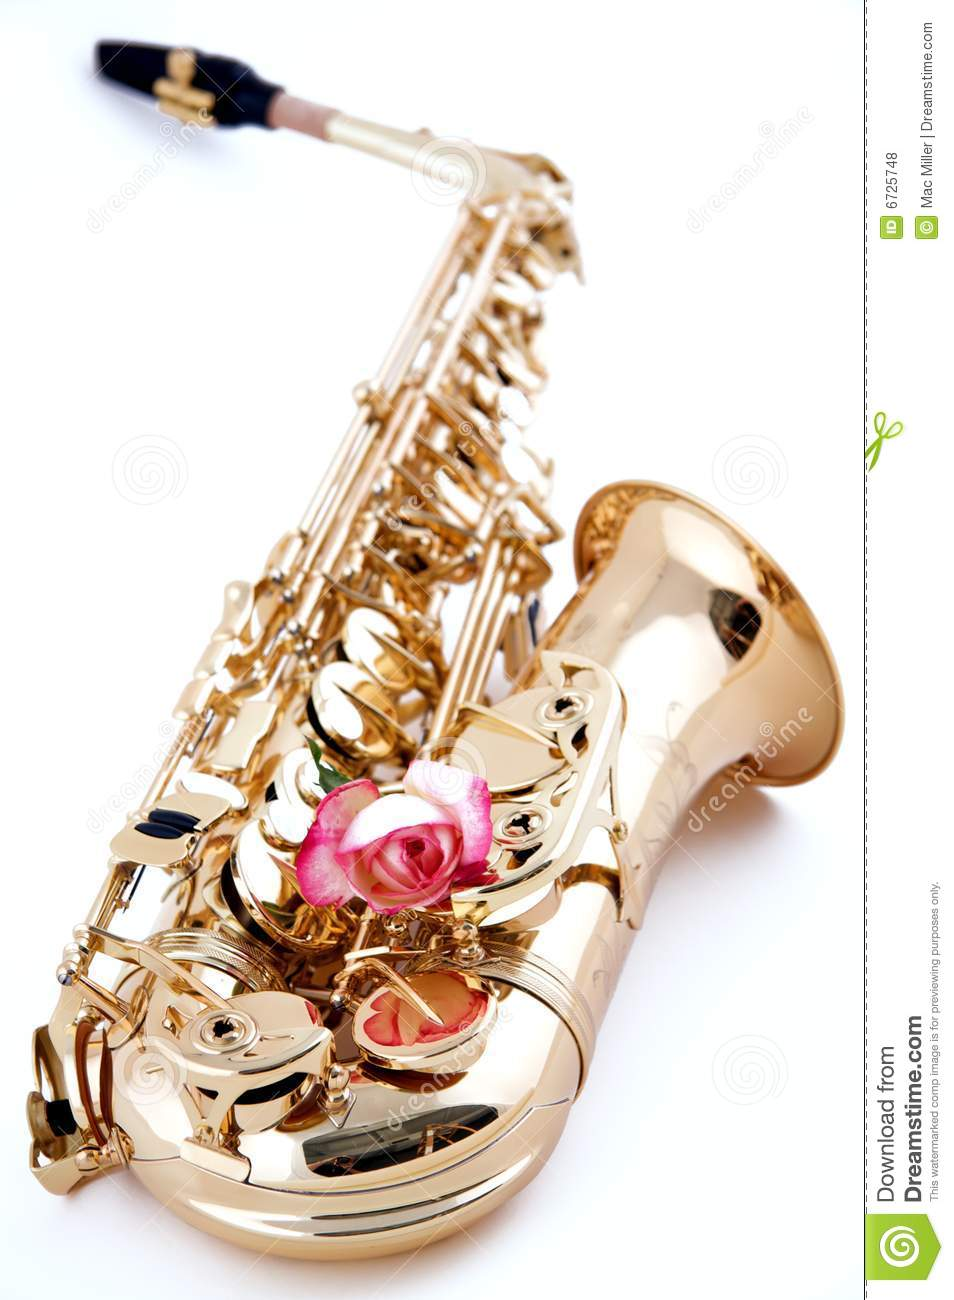 how to make a saxophoen